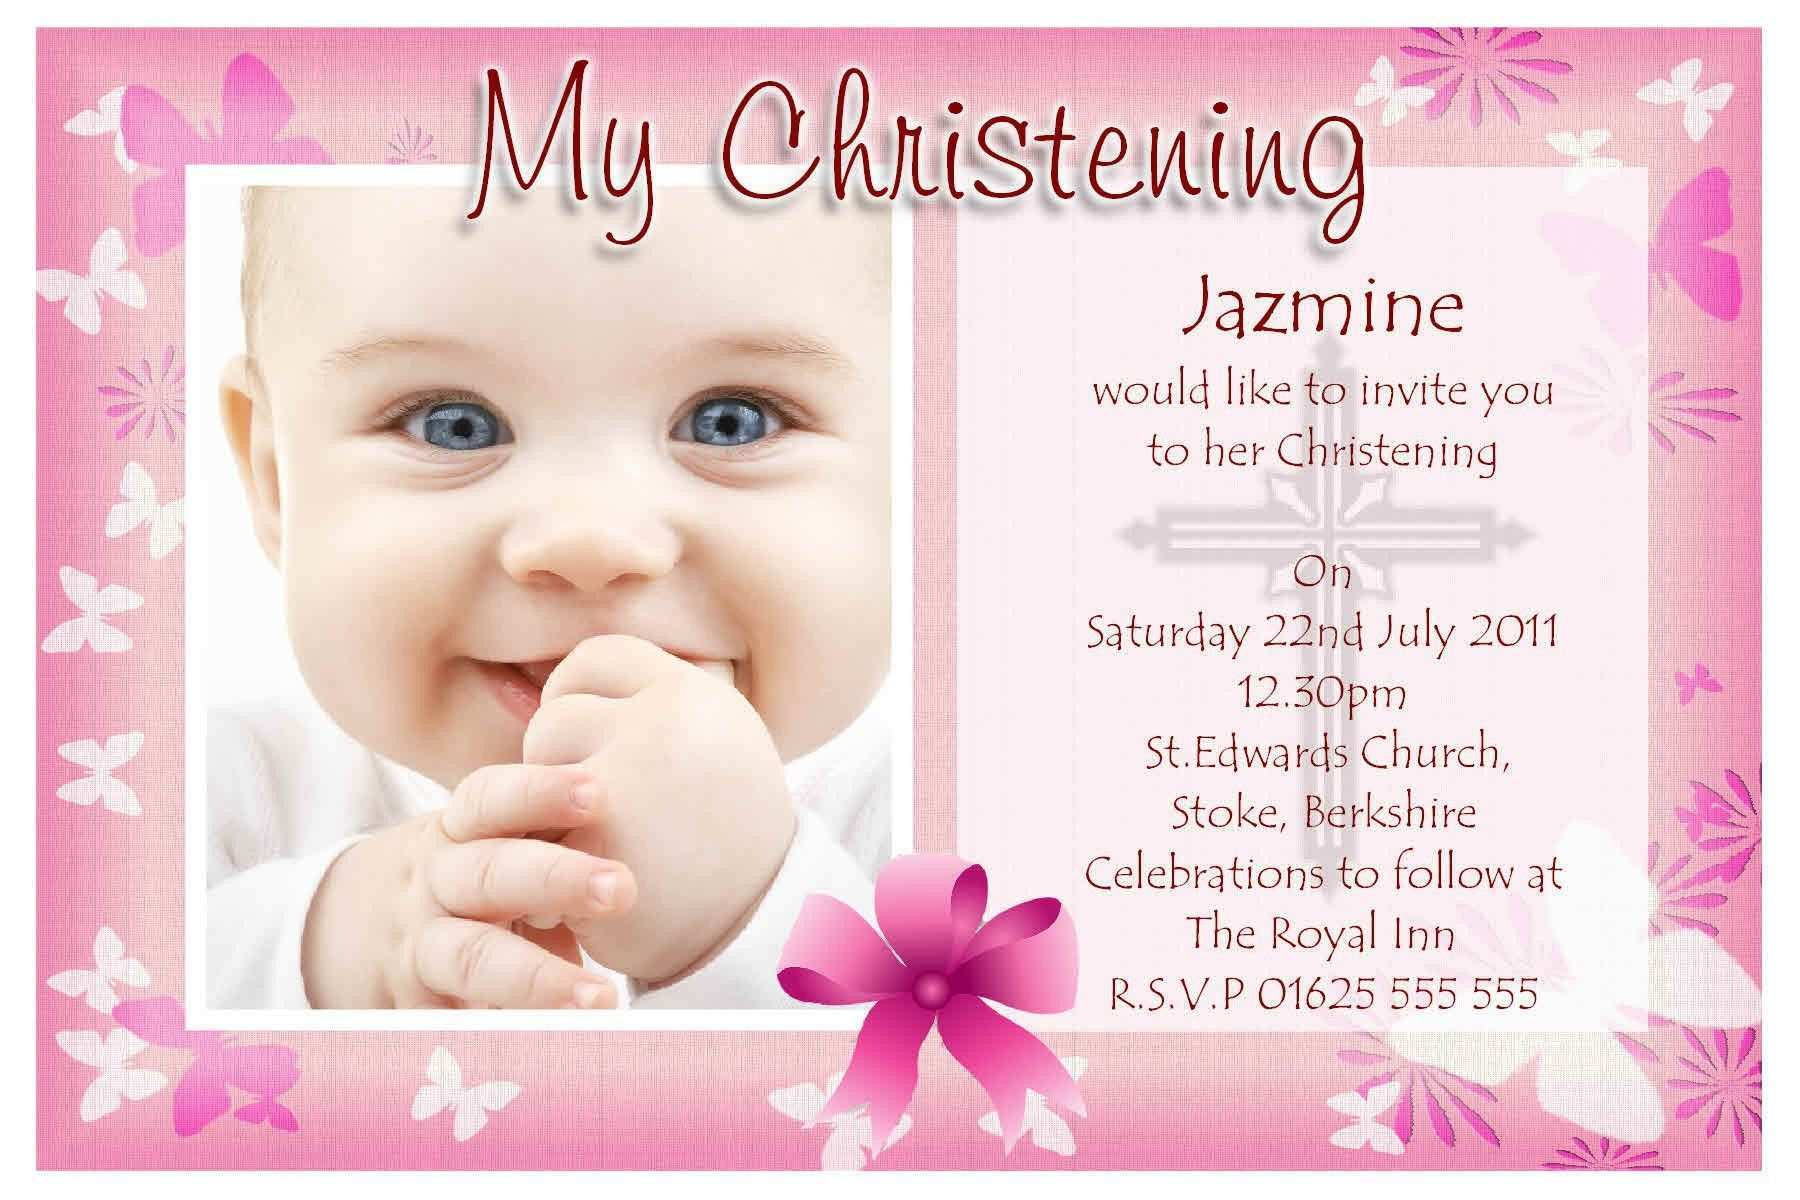 31 Free Editable Christening Invitation For Baby Girl Blank Template Formating For Editable Christening Invitation For Baby Girl Blank Template Cards Design Templates